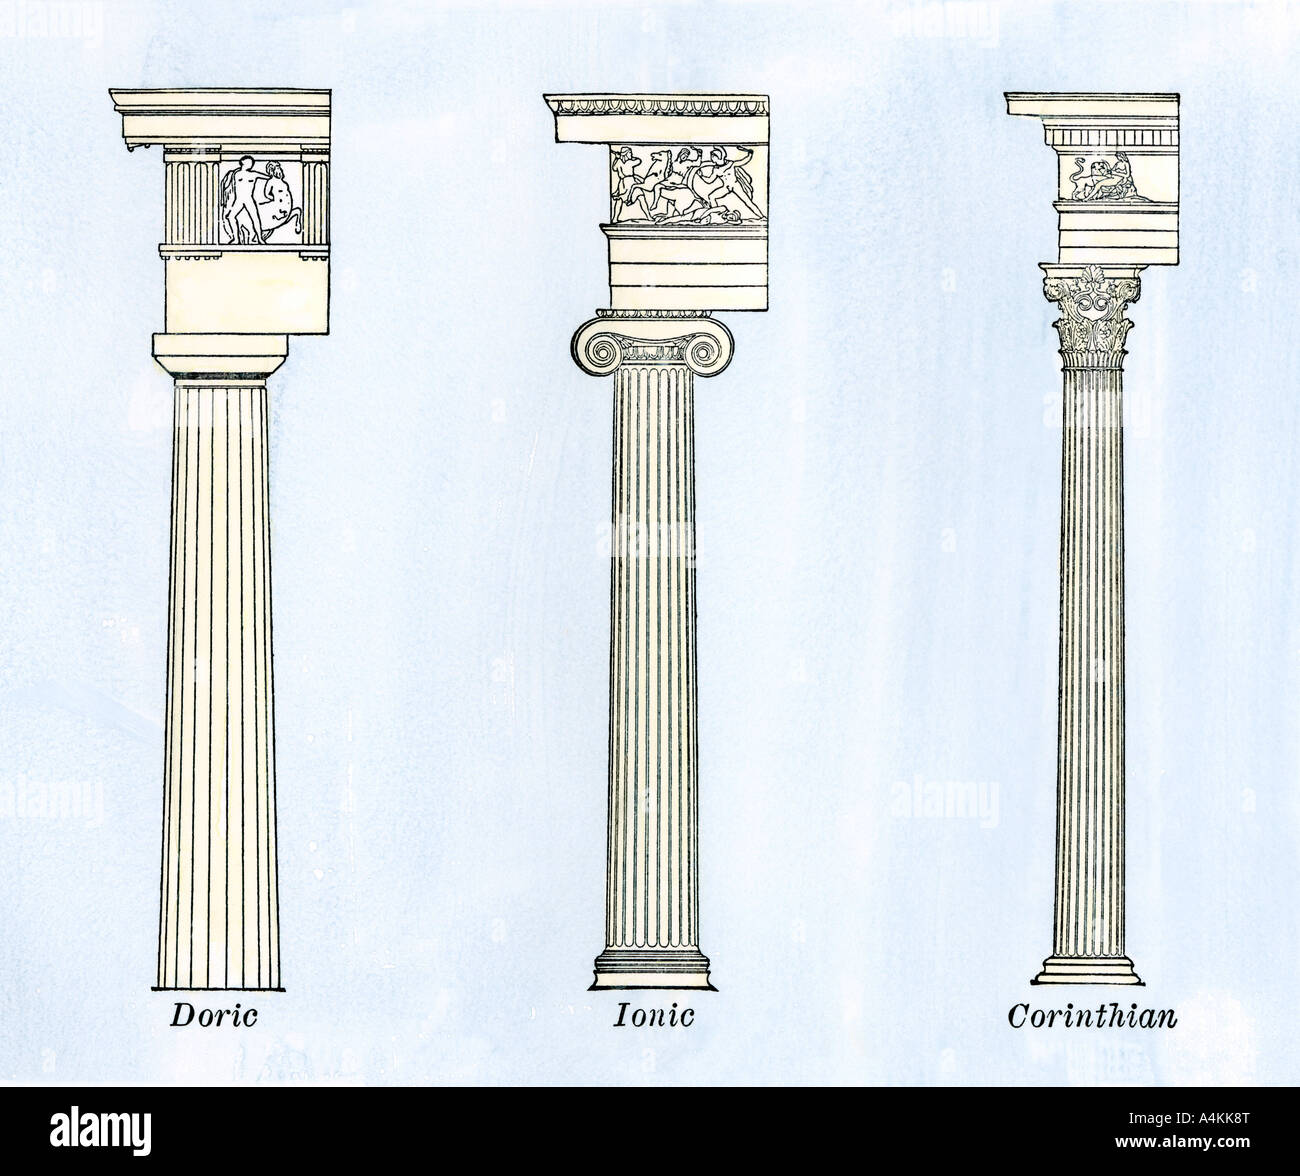 classical architecture styles doric ionic and corinthian